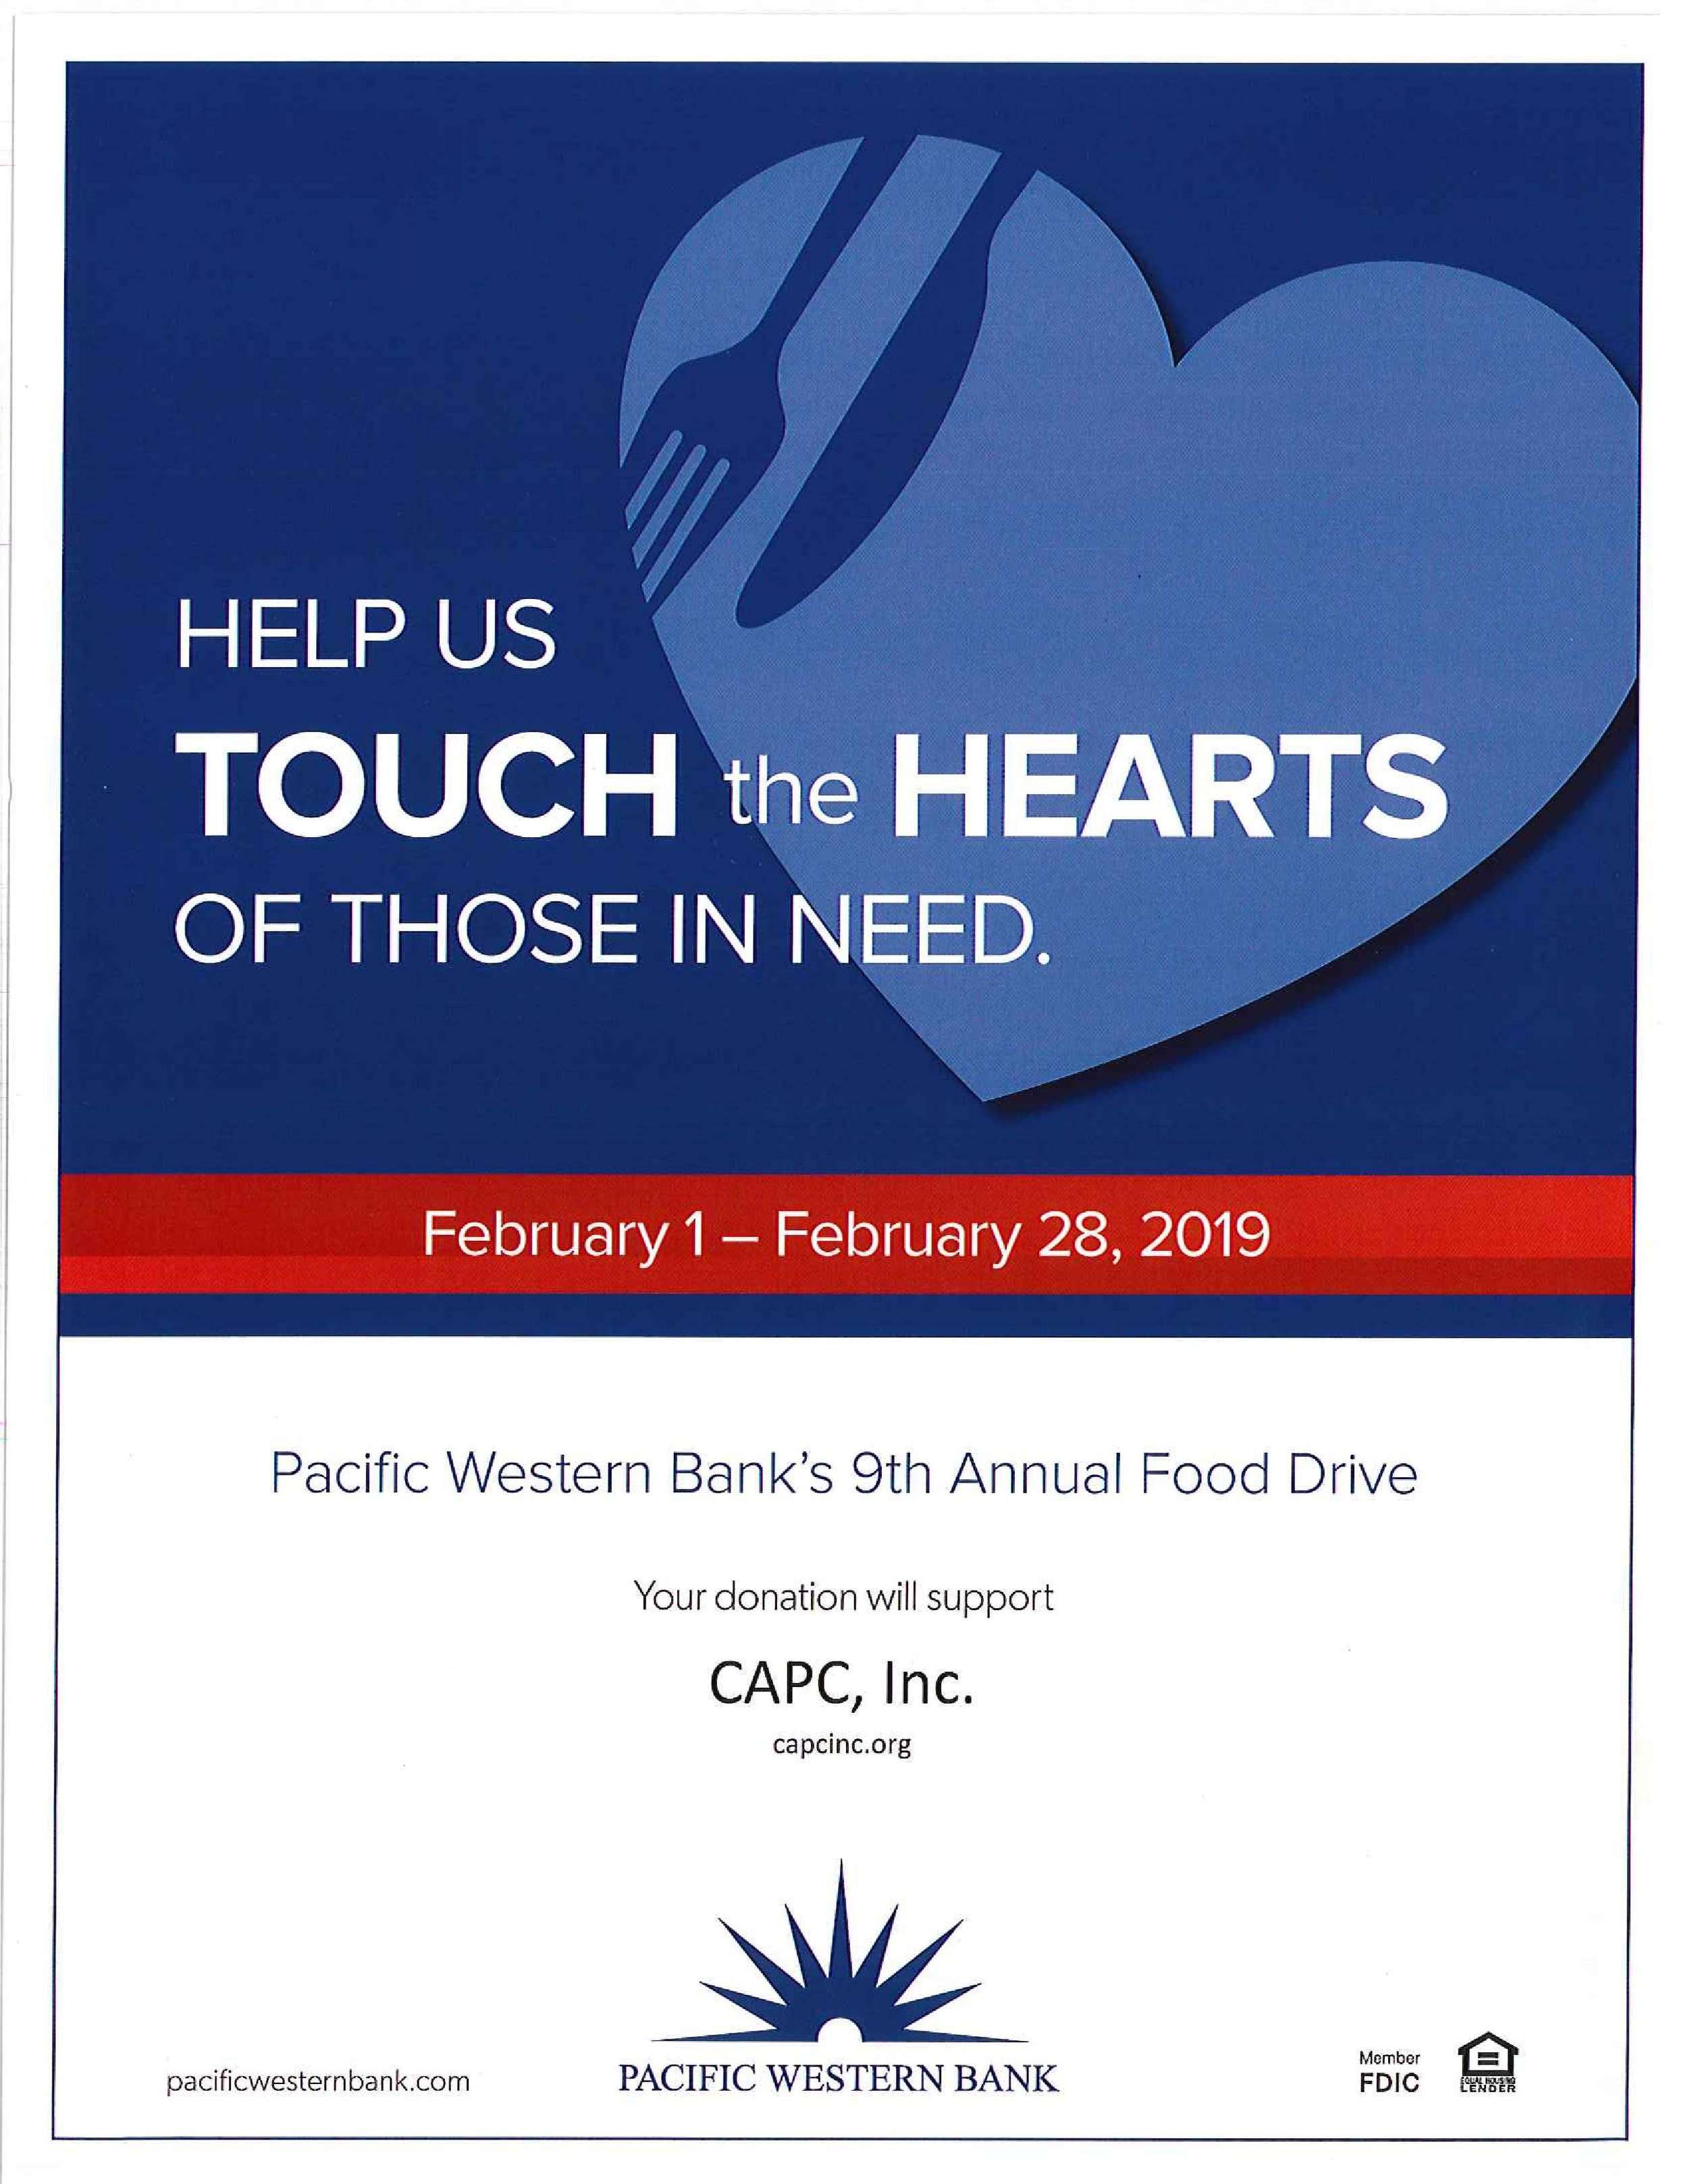 pacific western bank's 9th annual food drive - February 1st-28th, 2019